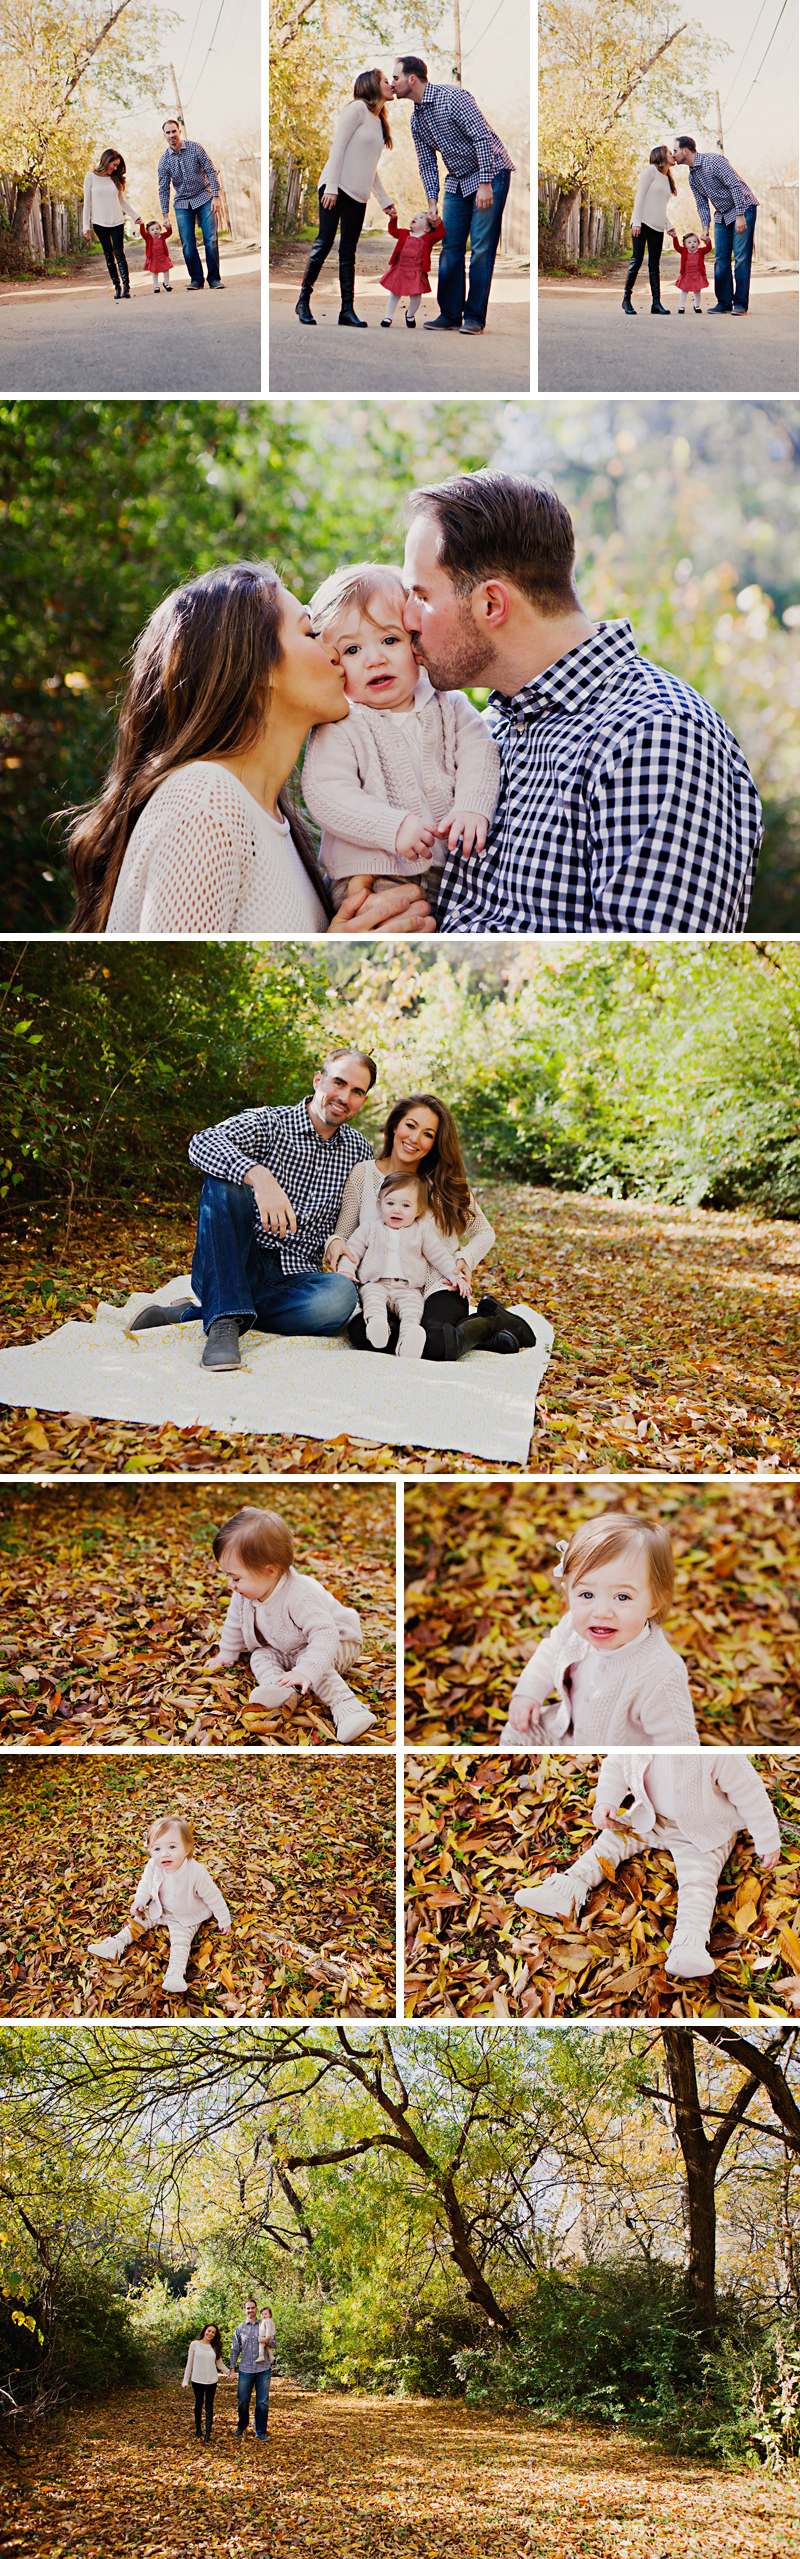 Dallas-Family-Photographerc068